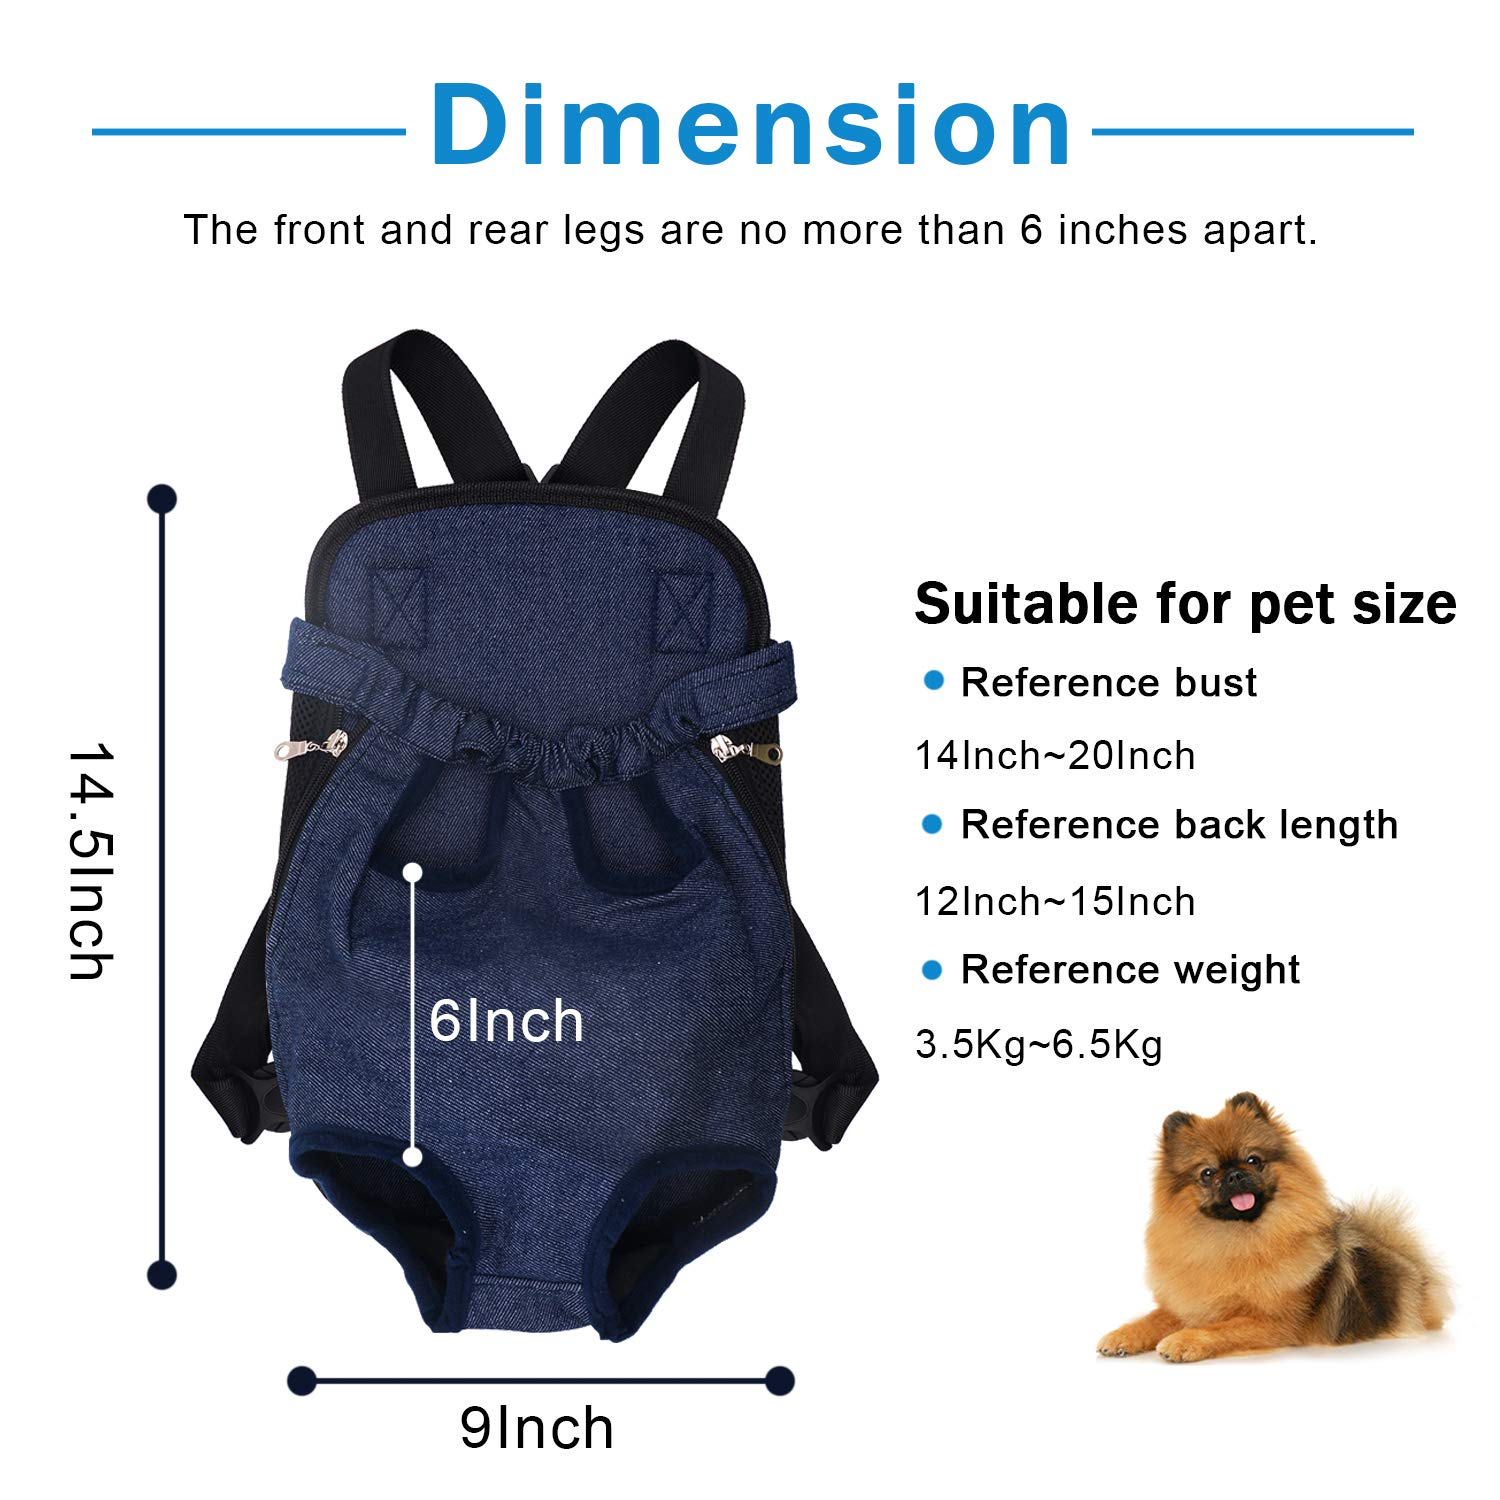 Esthesia Dog Carrier Backpack, Legs Out Front Pet Carrier Dog Leash Hands-Free Adjustable Backpack Travel Bag for Hiking, Camping, Bike Riding or Travel with Pet Puppy Doggie Cat Bunny Breeds Outdoor